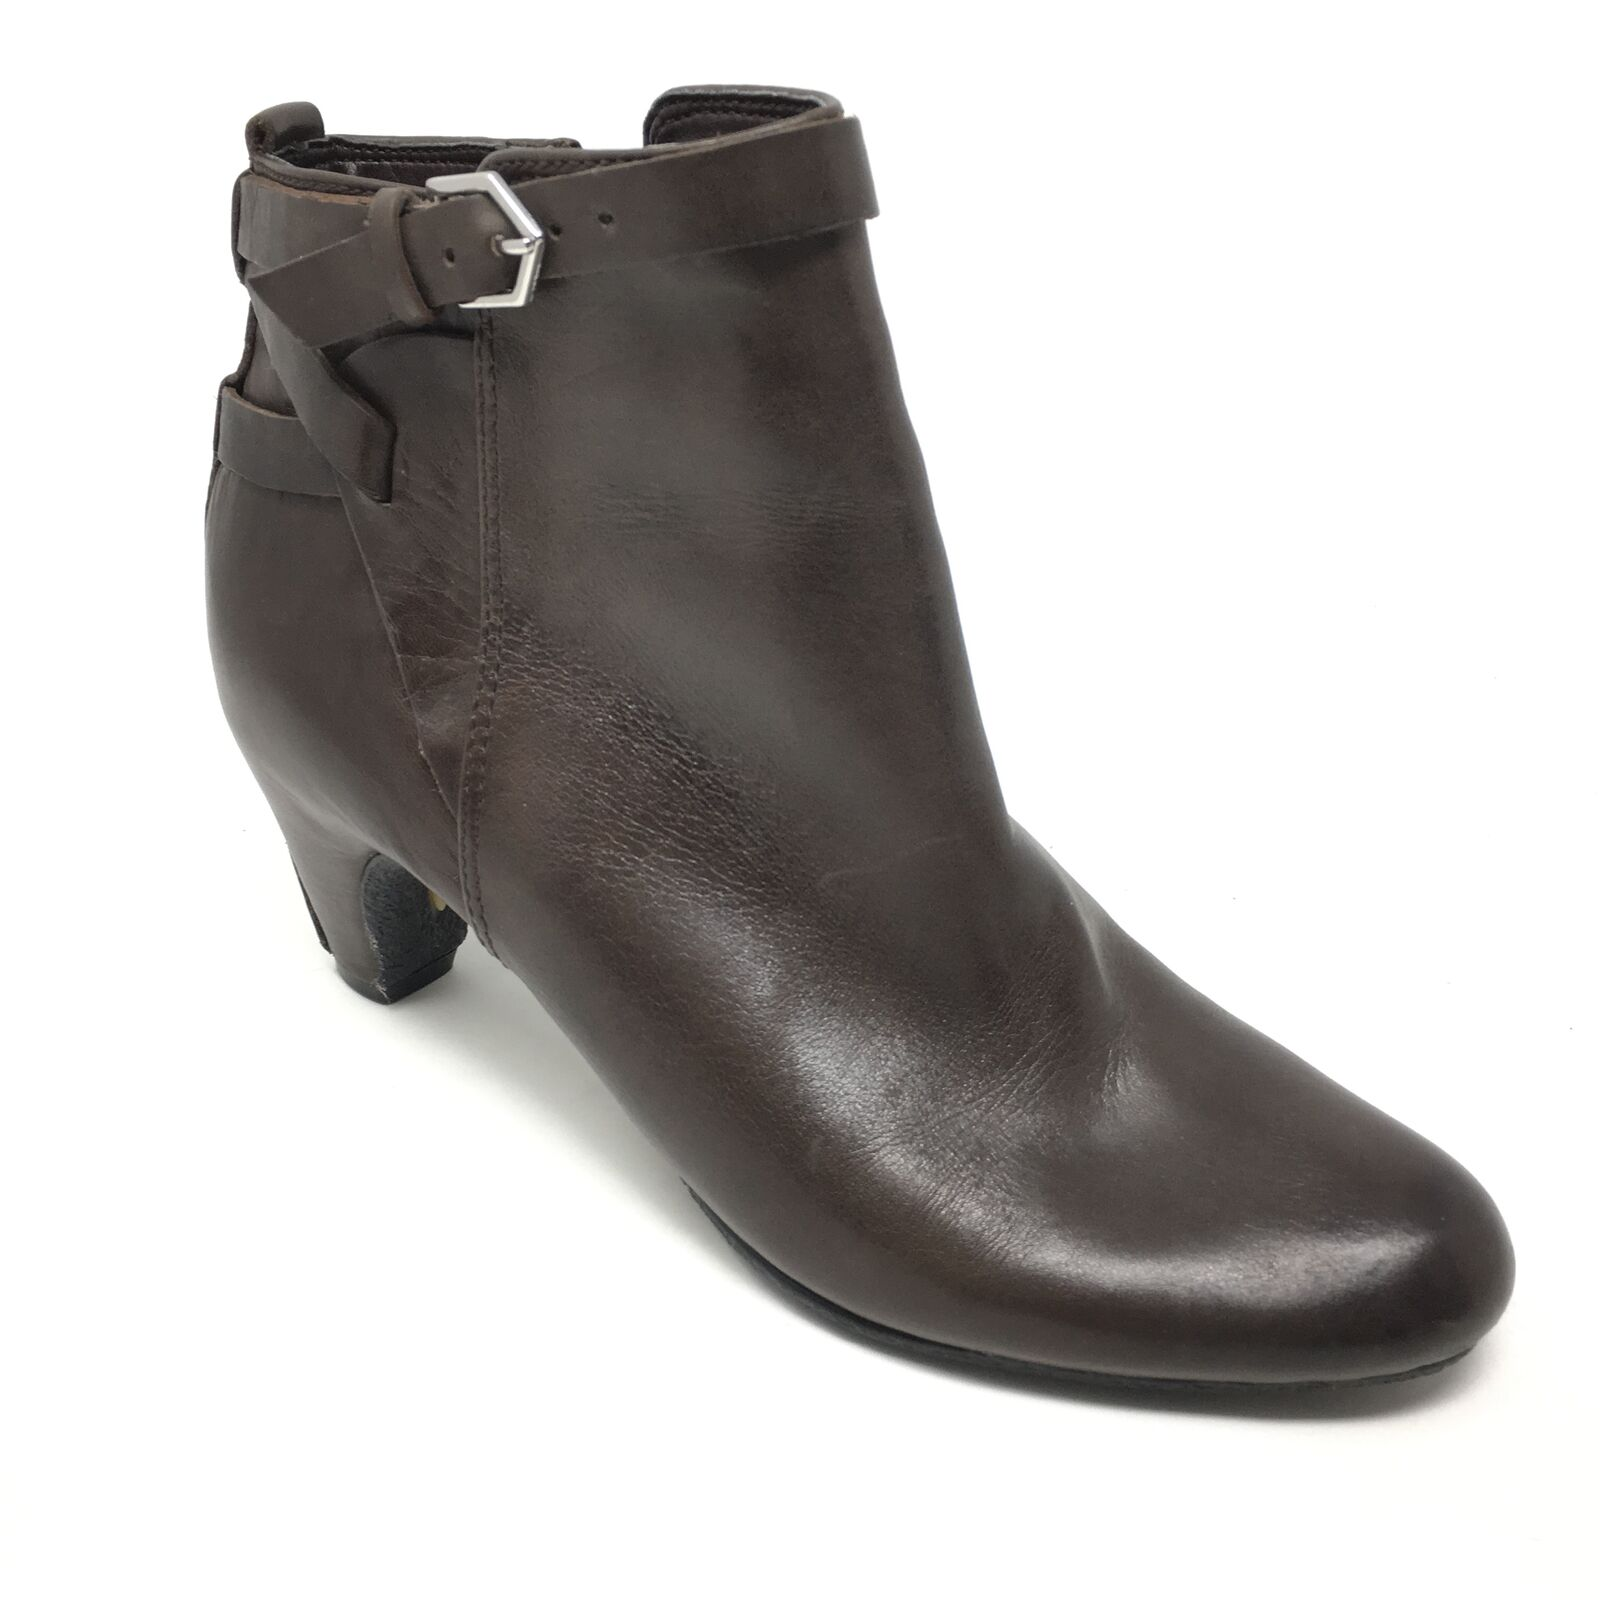 Women's Sam Edelman Maddox Ankle Boots Booties shoes Size 6.5M Brown Zip Up I15